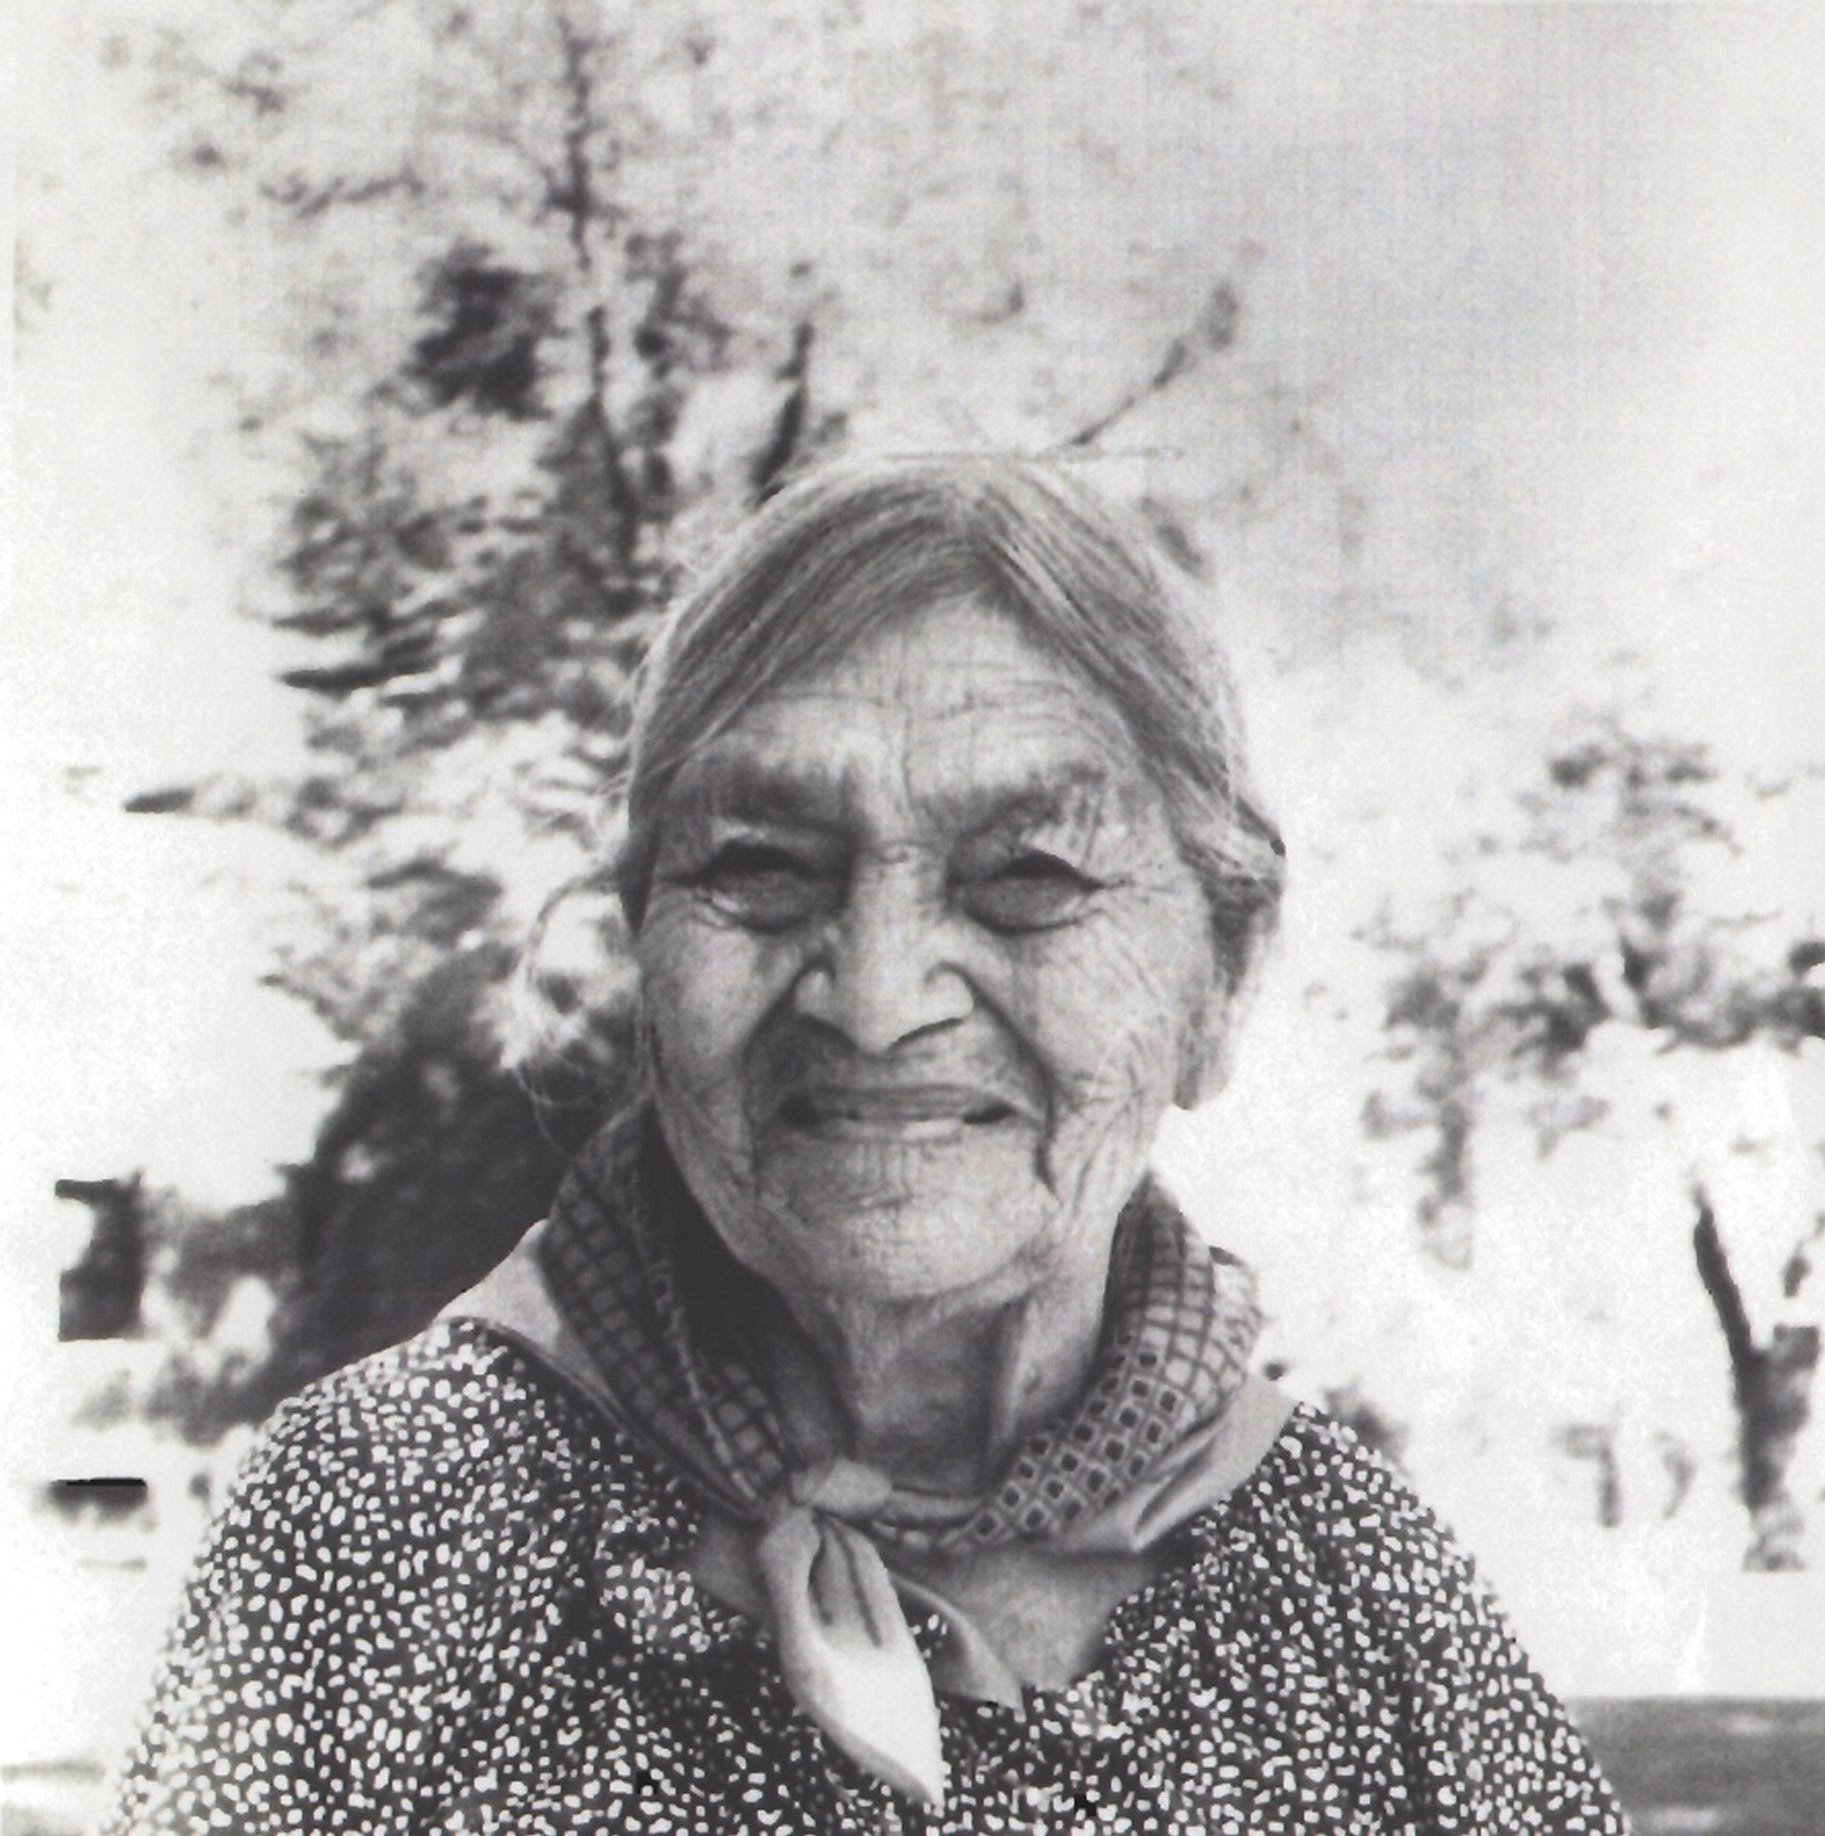 Women's History Month: Northern Paiute kept her culture alive amid societal change